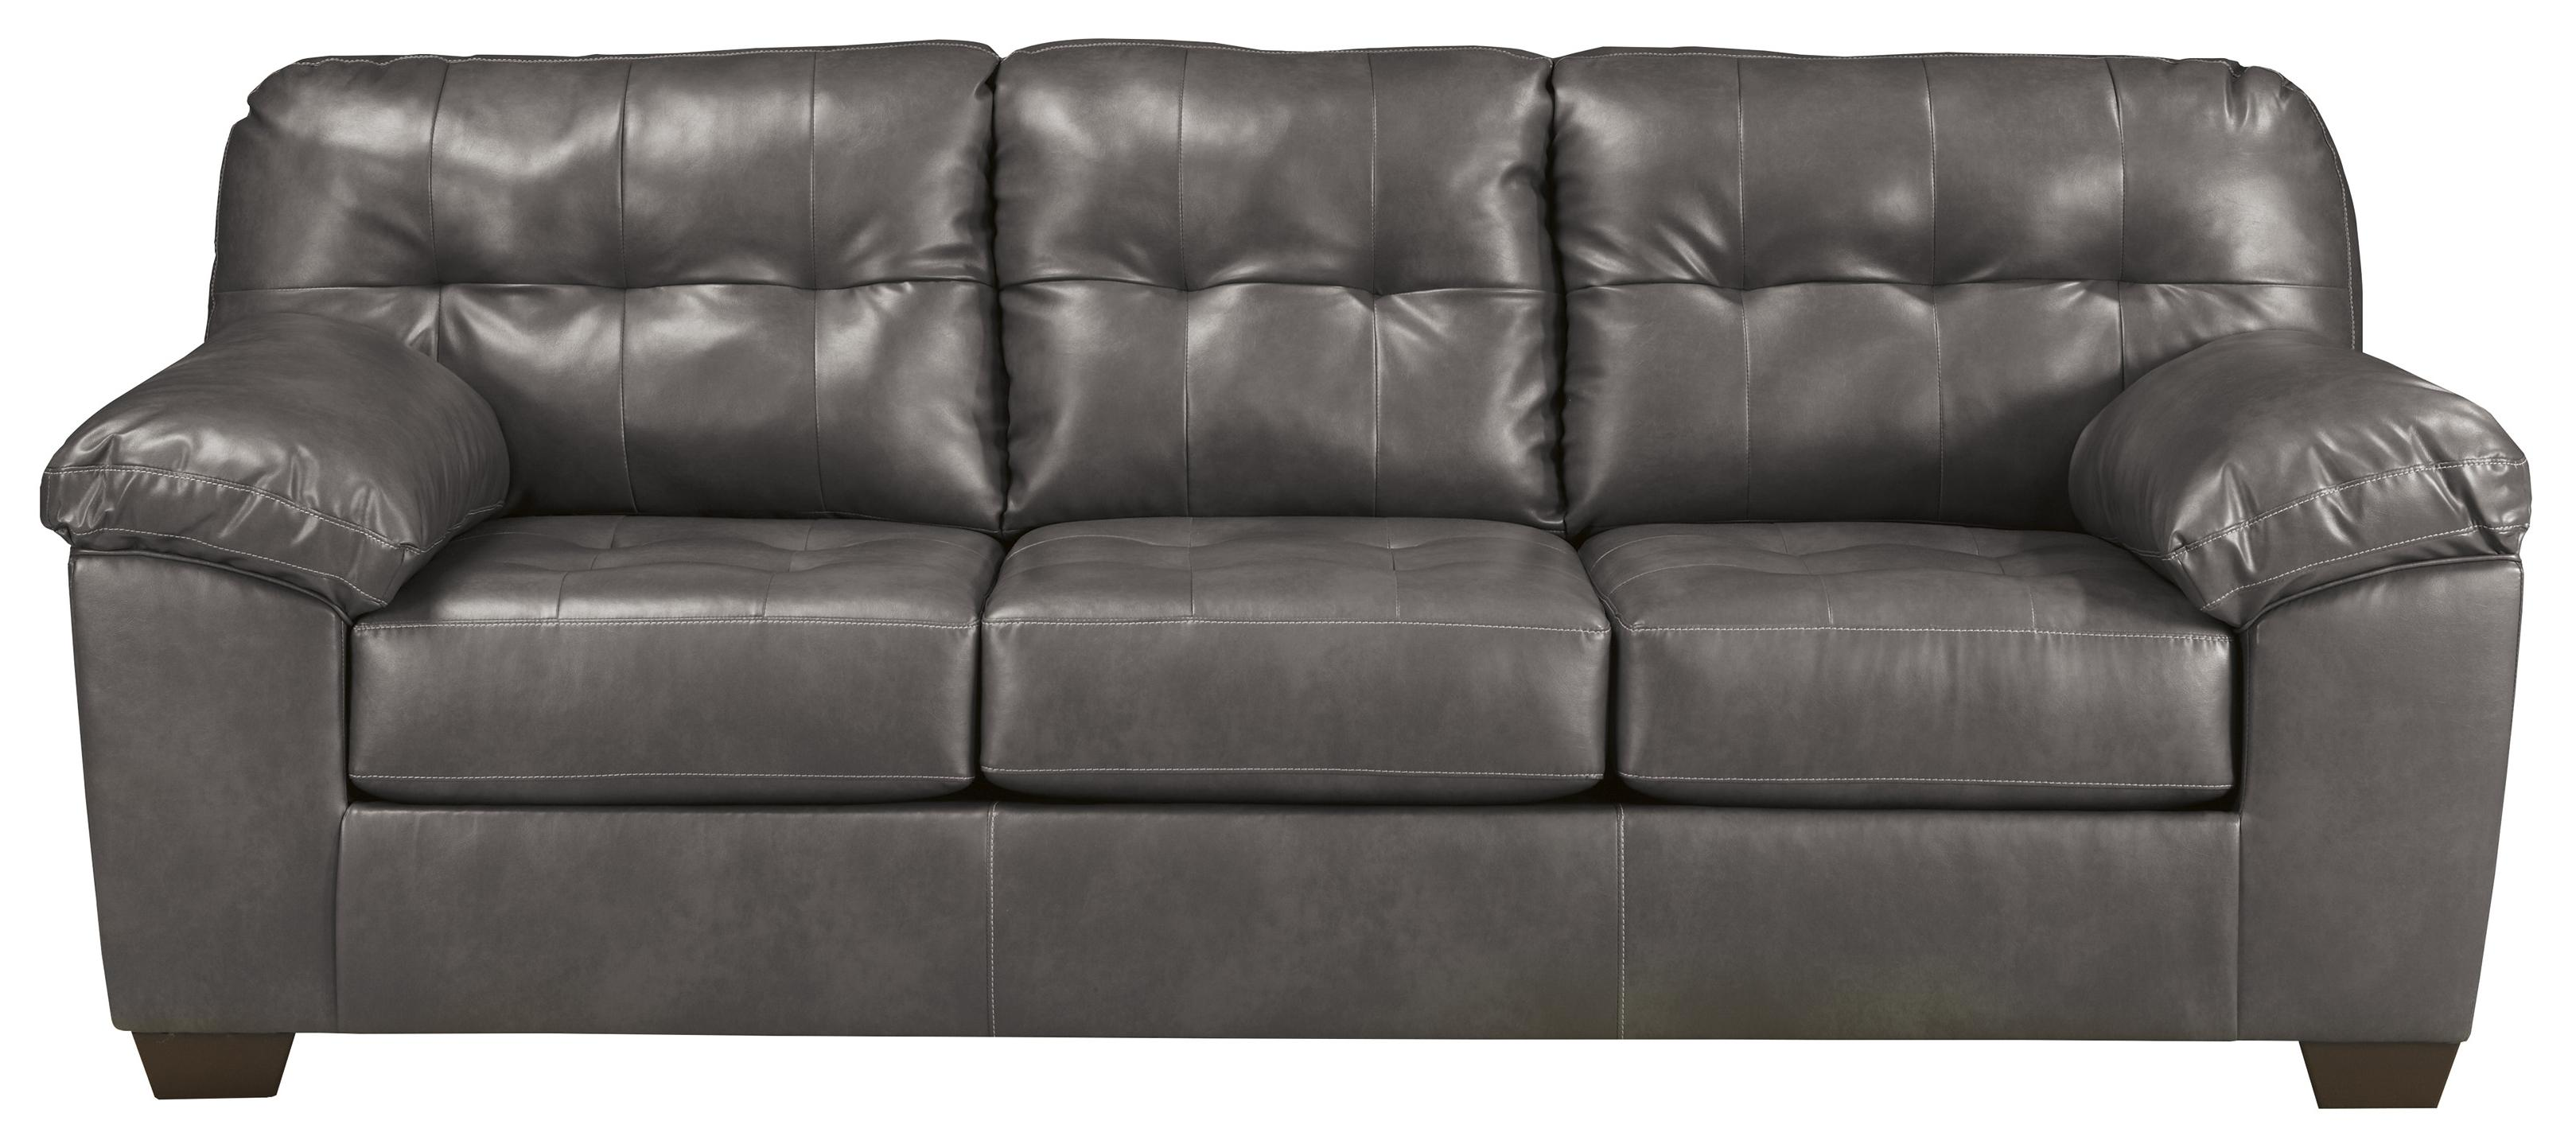 Alliston DuraBlend® - Gray Sofa by Signature Design by Ashley at Catalog Outlet